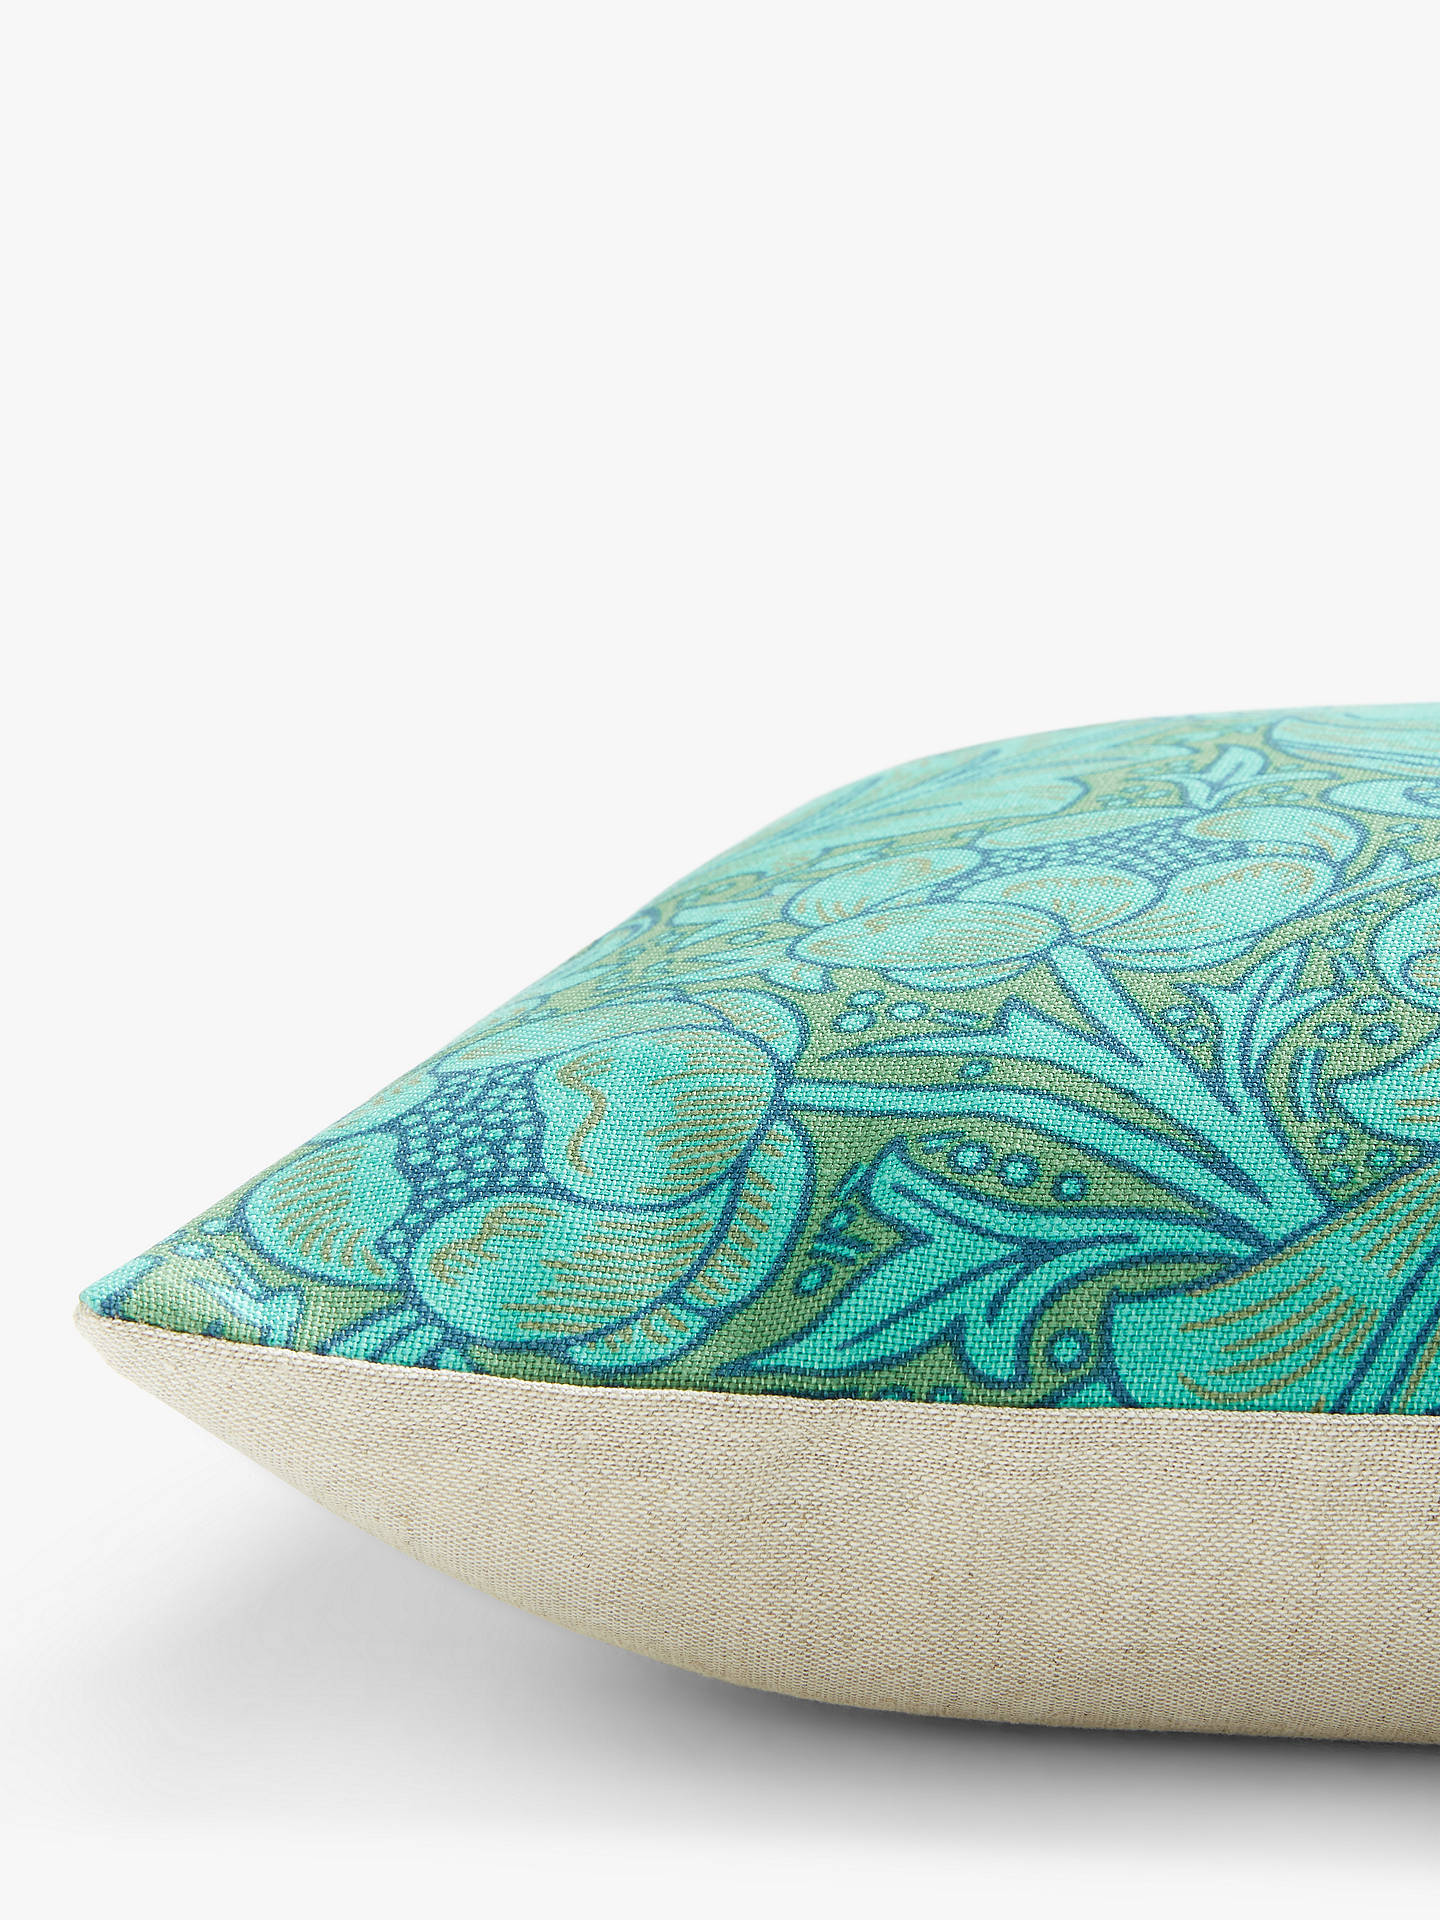 Buy Morris & Co. Bachelor's Button Cushion, Olive / Turquoise Online at johnlewis.com